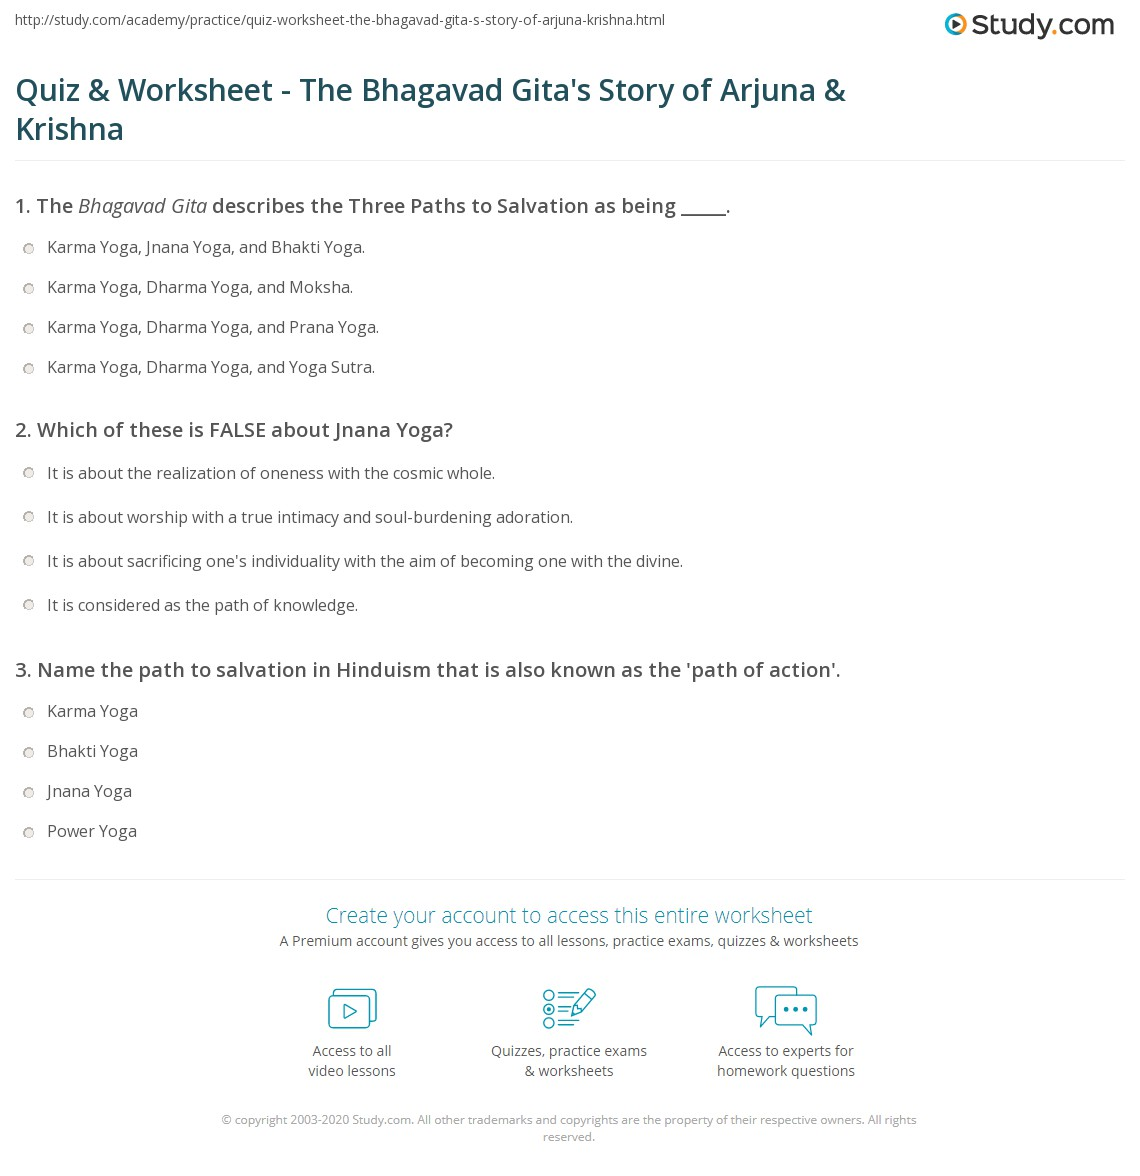 Quiz worksheet the bhagavad gitas story of arjuna krishna print the bhagavad gitas story of arjuna krishna the three paths to salvation worksheet fandeluxe